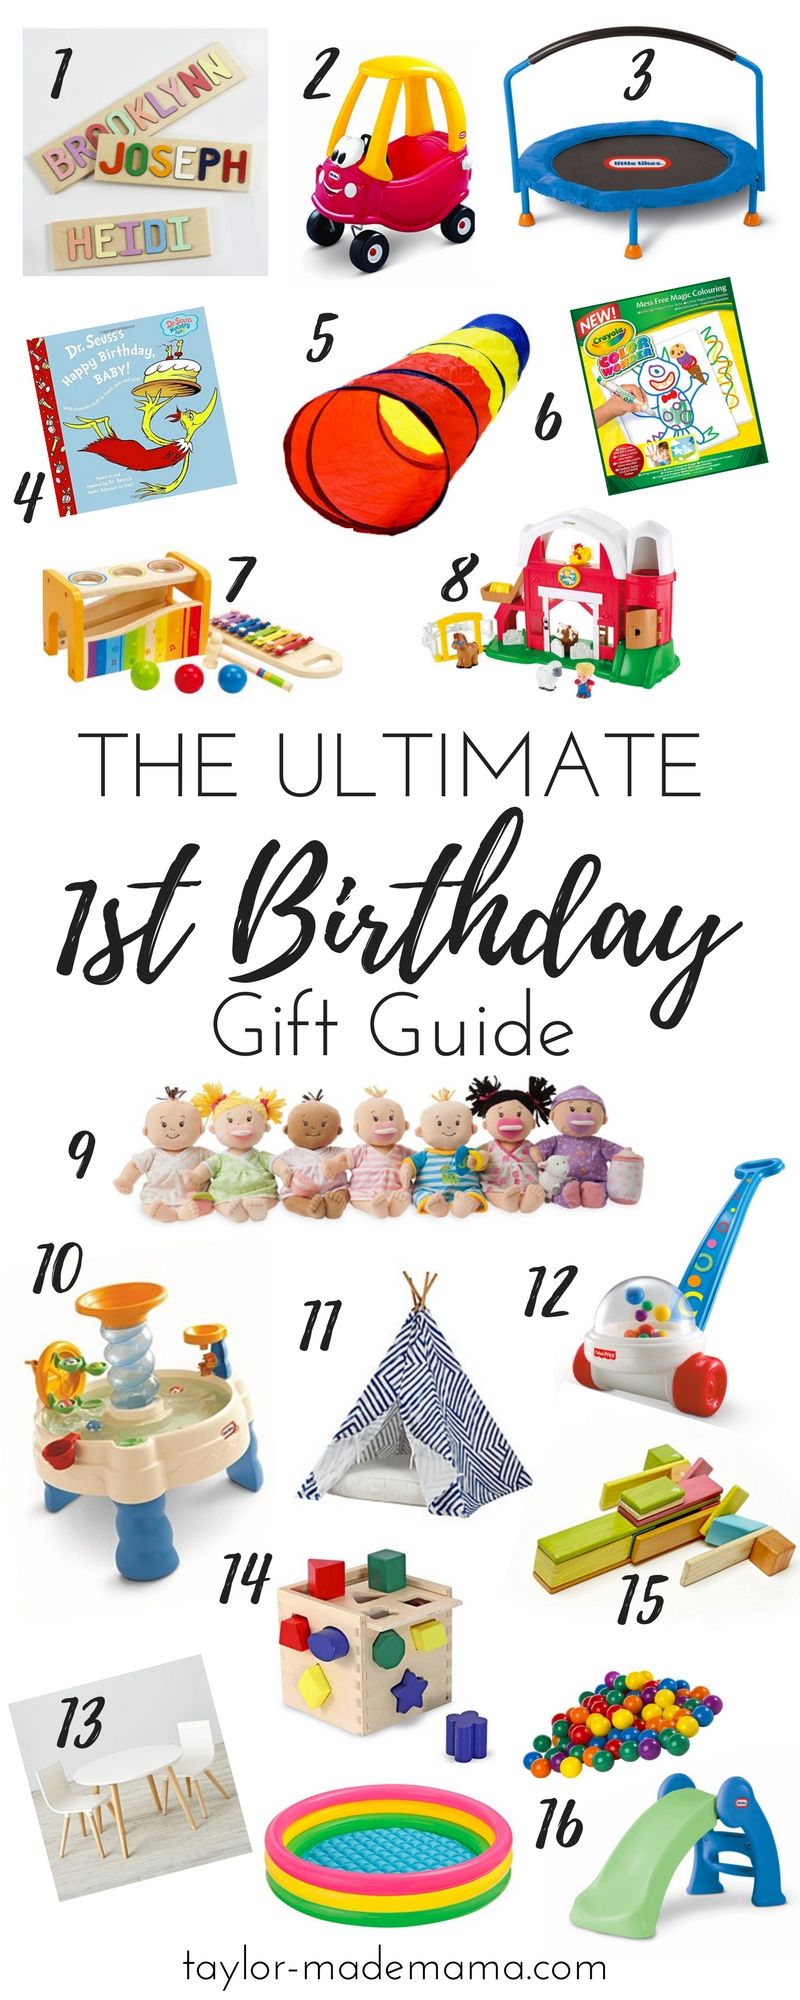 10 Awesome 3 Year Old Boy Birthday Gift Ideas the ultimate first birthday party planning and gift guide top toys 1 2021